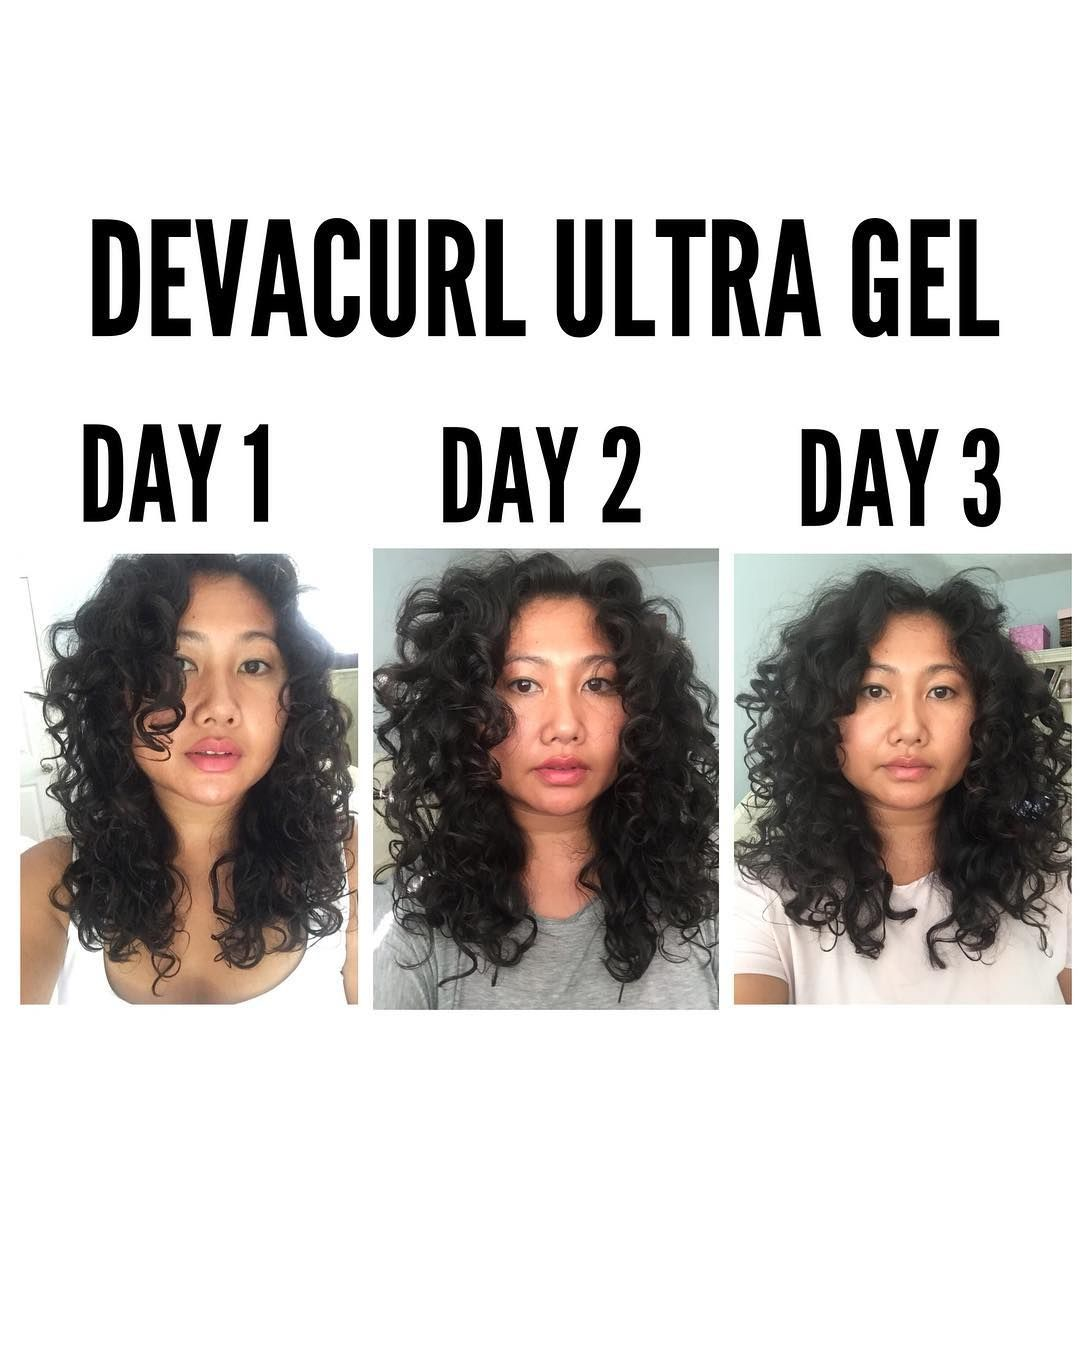 Devacurl Ultra Gel On 2c 3a Curls Over The Span Of Three